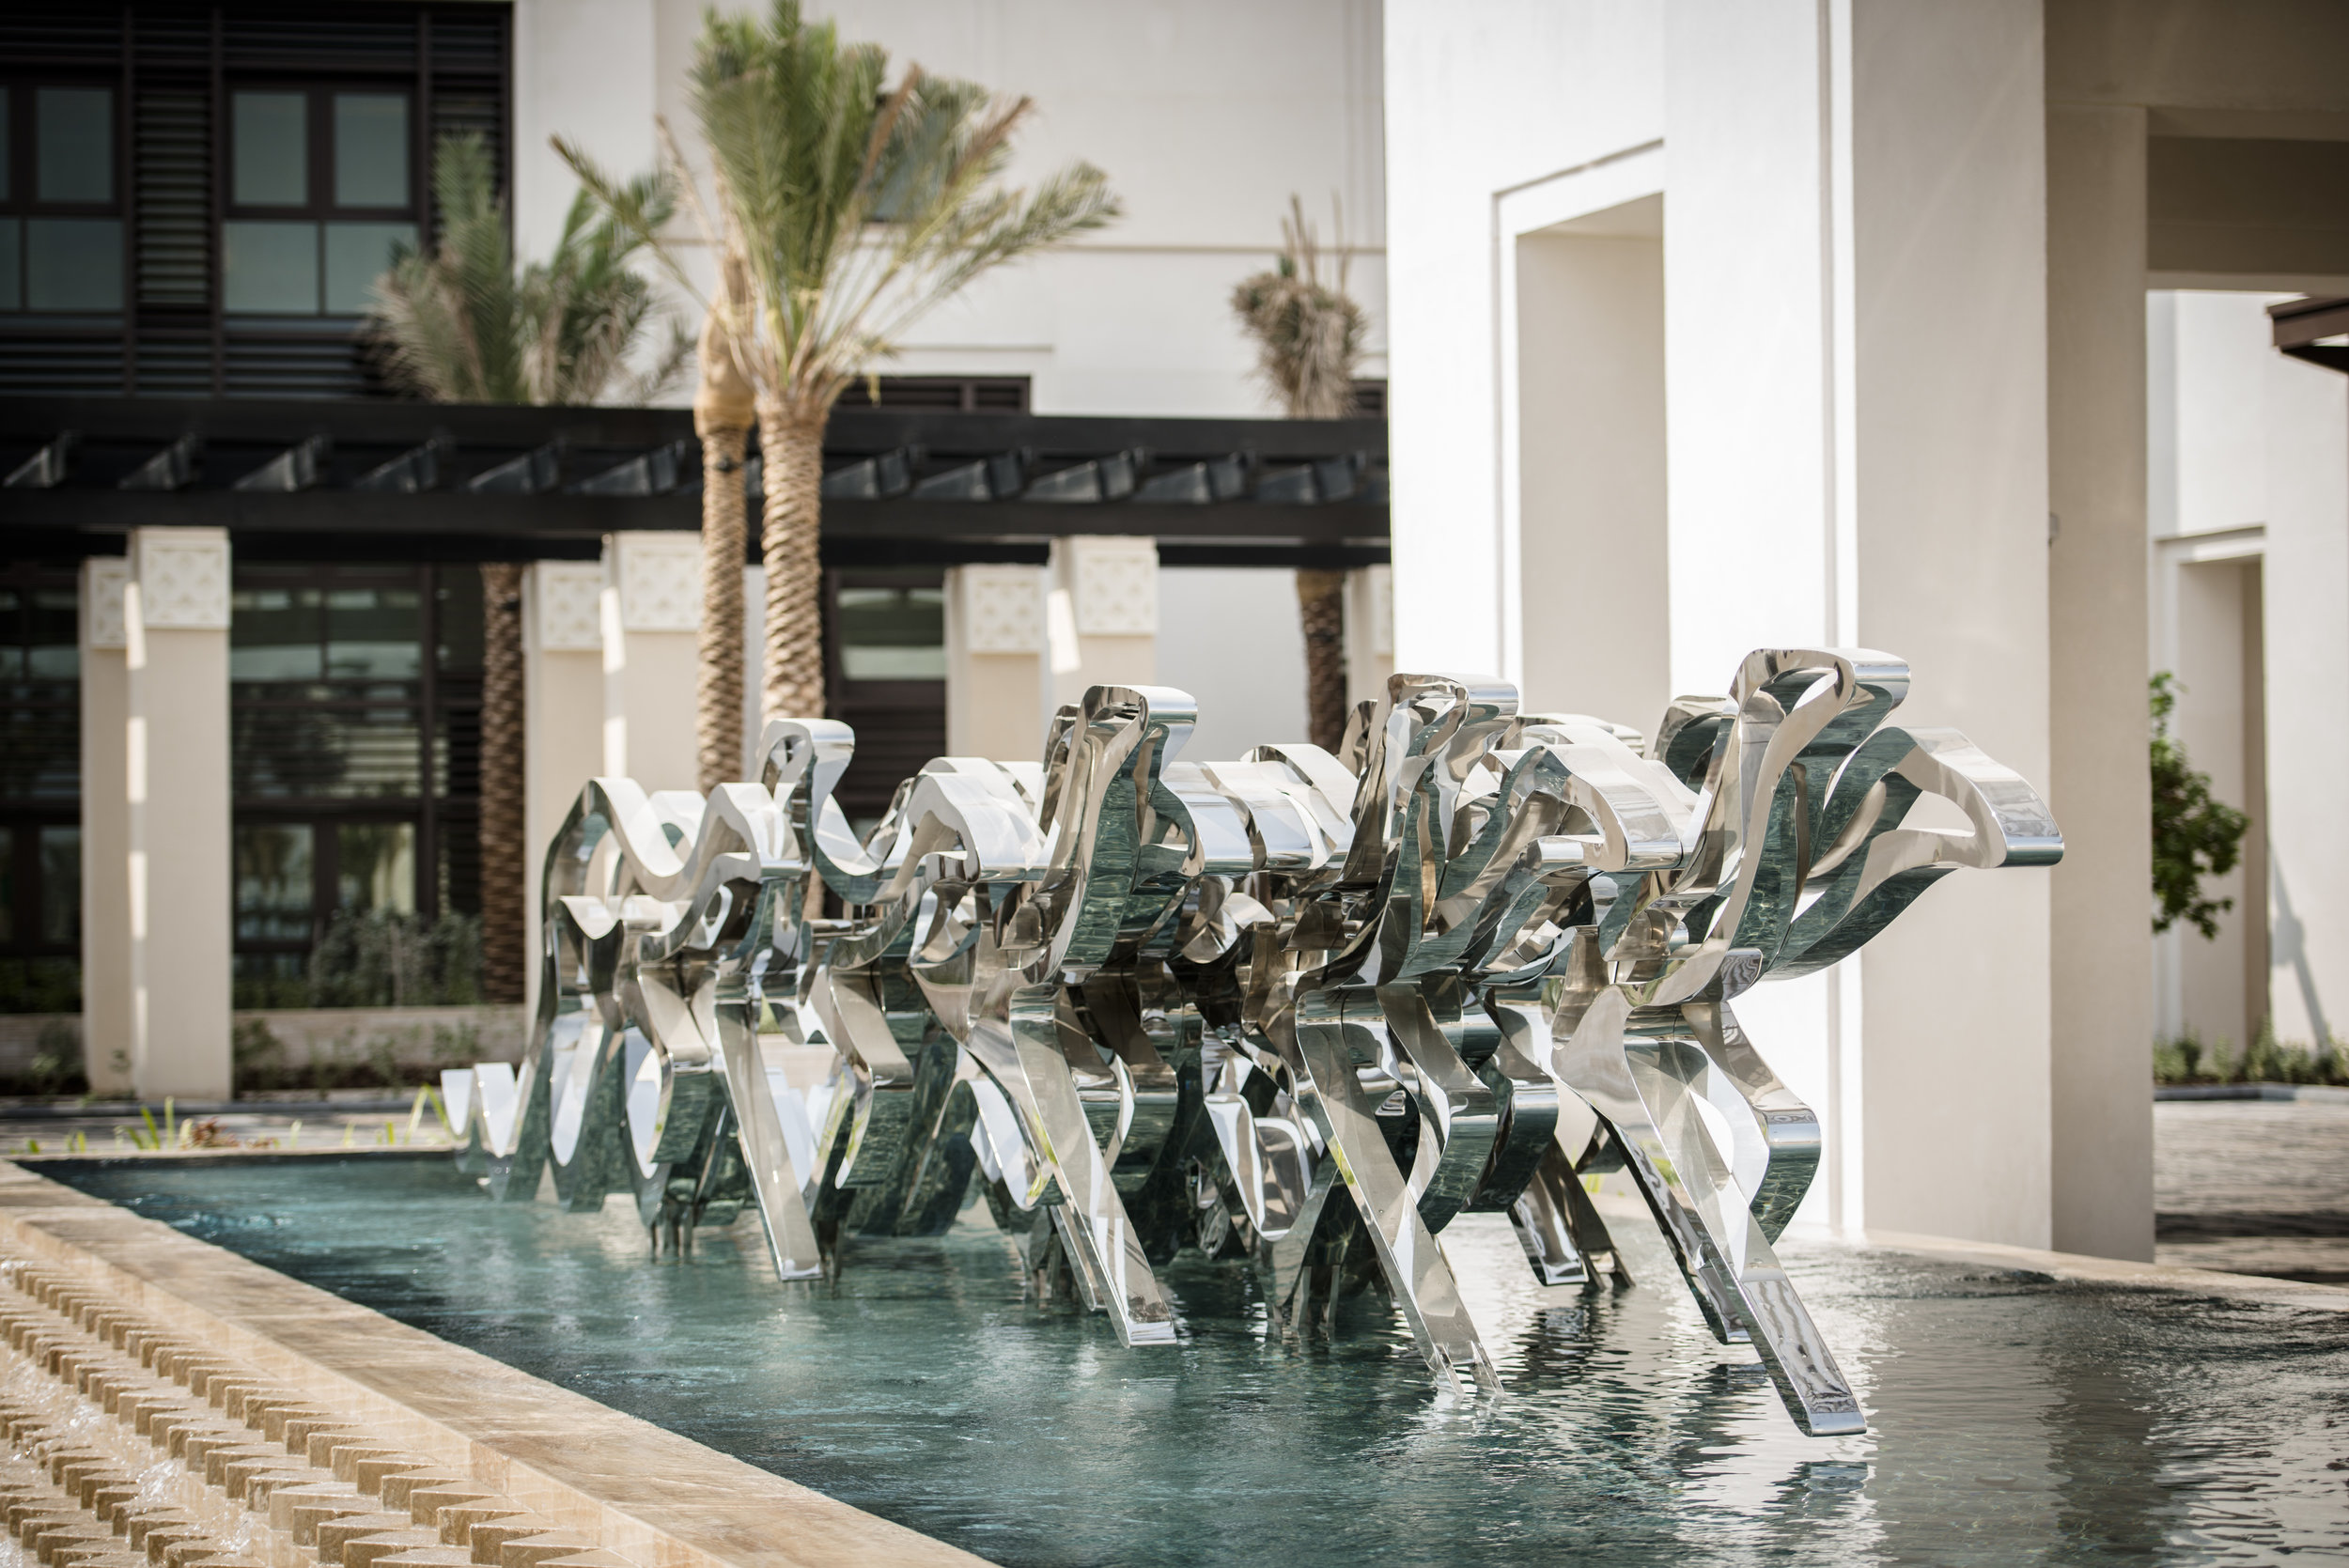 Mattar Bin Lahej depicts the image of a galloping horse in many of his artworks. In the driveway of Jumeirah Al Nassem hotel, visitors can see his monumental sculpture. Image courtesy of Mattar Bin Lahej.